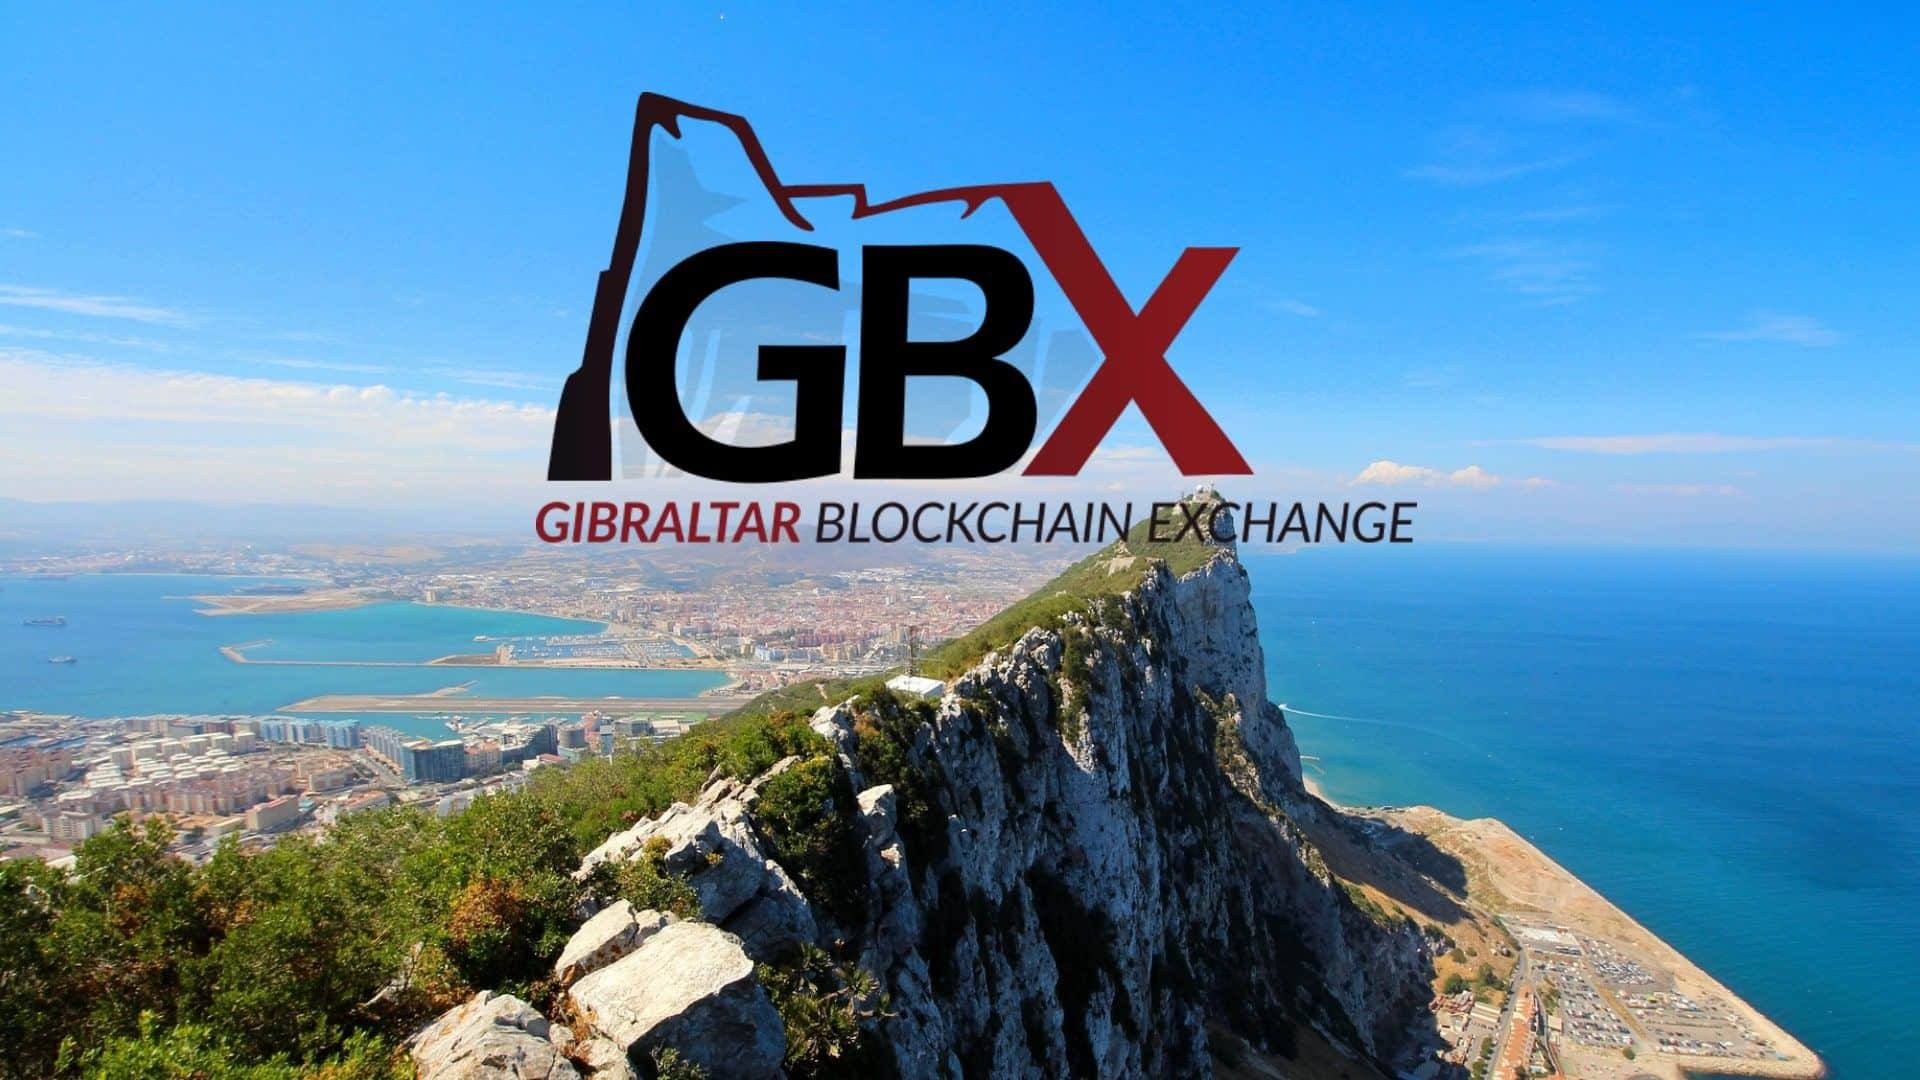 GBX is now an officially authorized exchange in Gibraltar